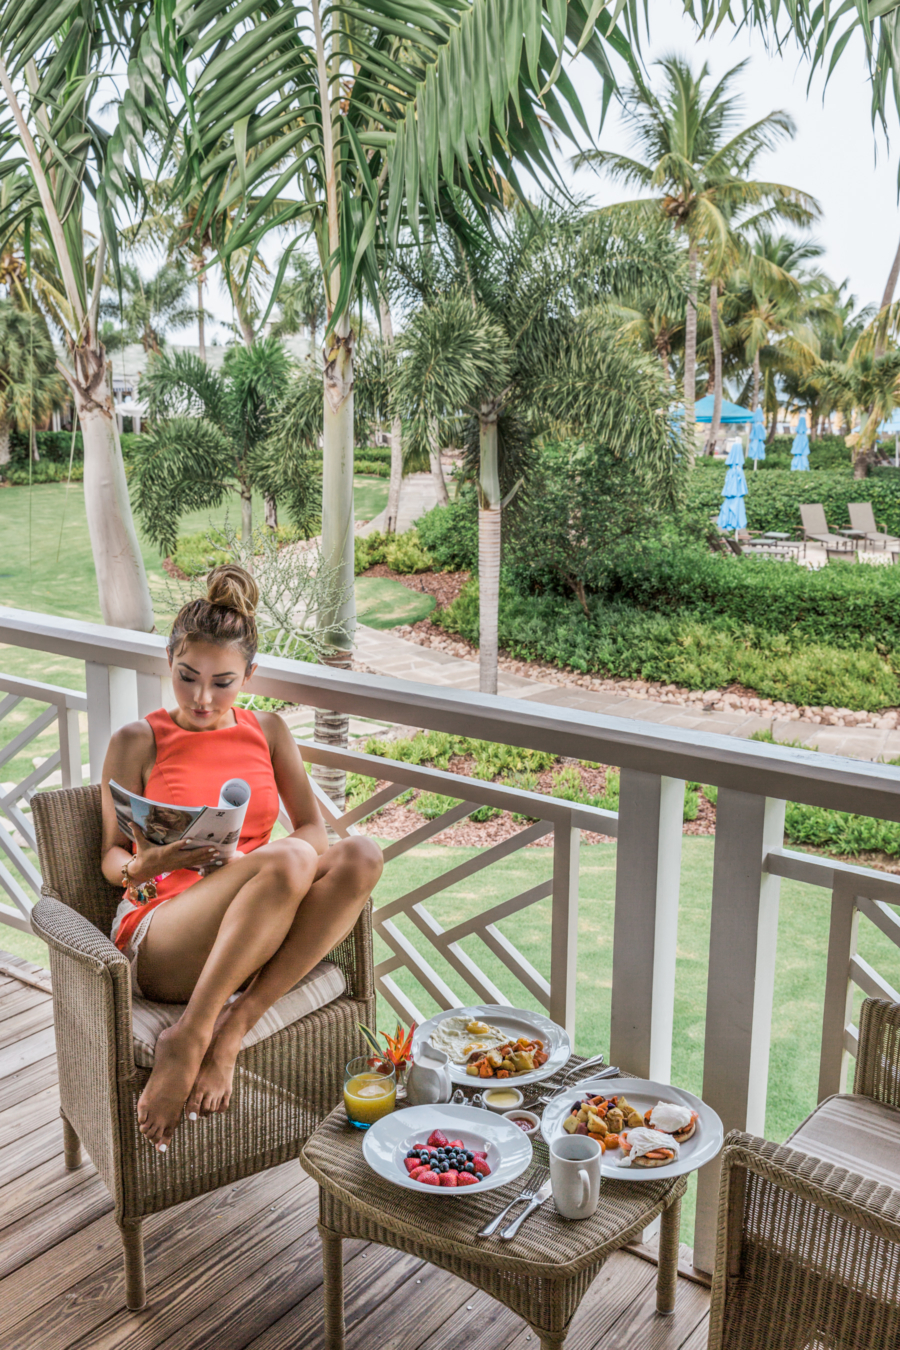 Four Seasons Resort, Nevis, Luxury Caribbean Resort, Rental, NOTJESSFASHION, NYC, Top Fashion Blogger, Lifestyle Blogger, Travel Blogger